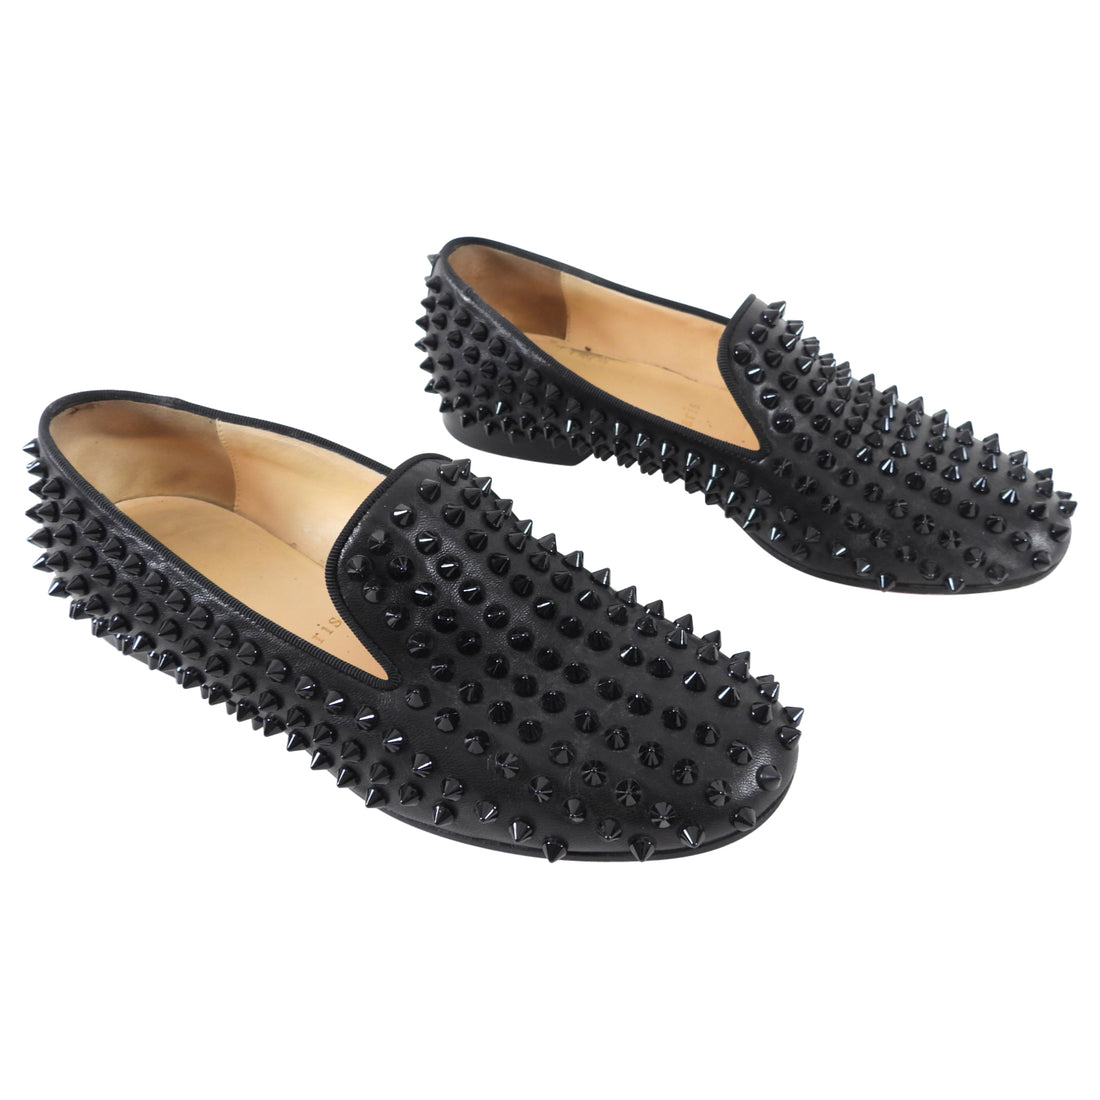 Christian Louboutin Black Stud Flat Rolling Loafer - 36.5